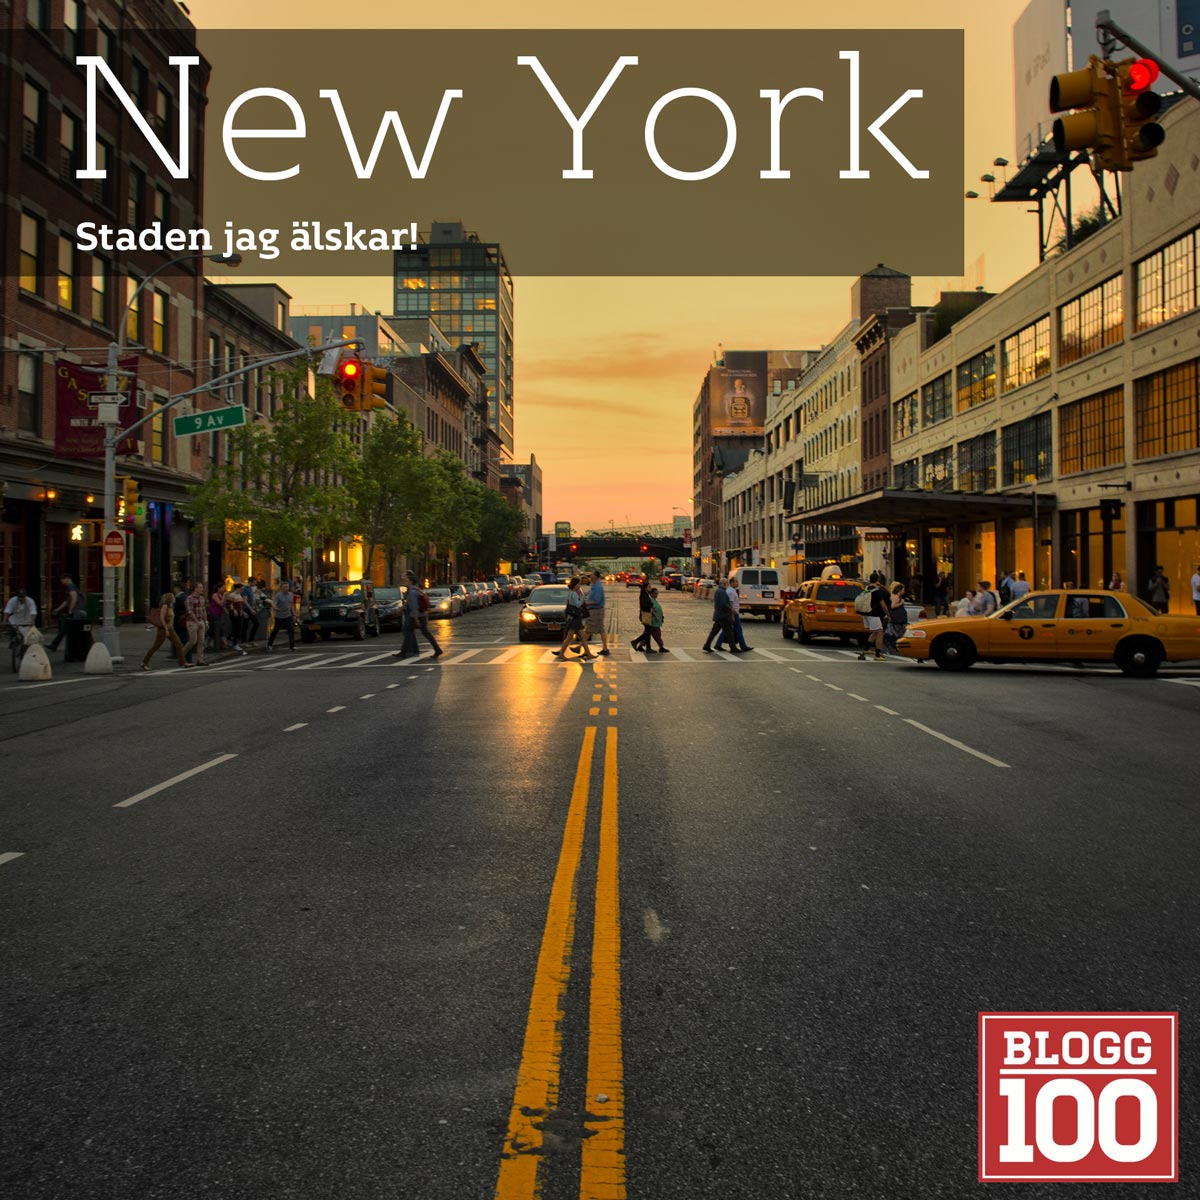 New York, lite olika små tips #blogg100 #FB